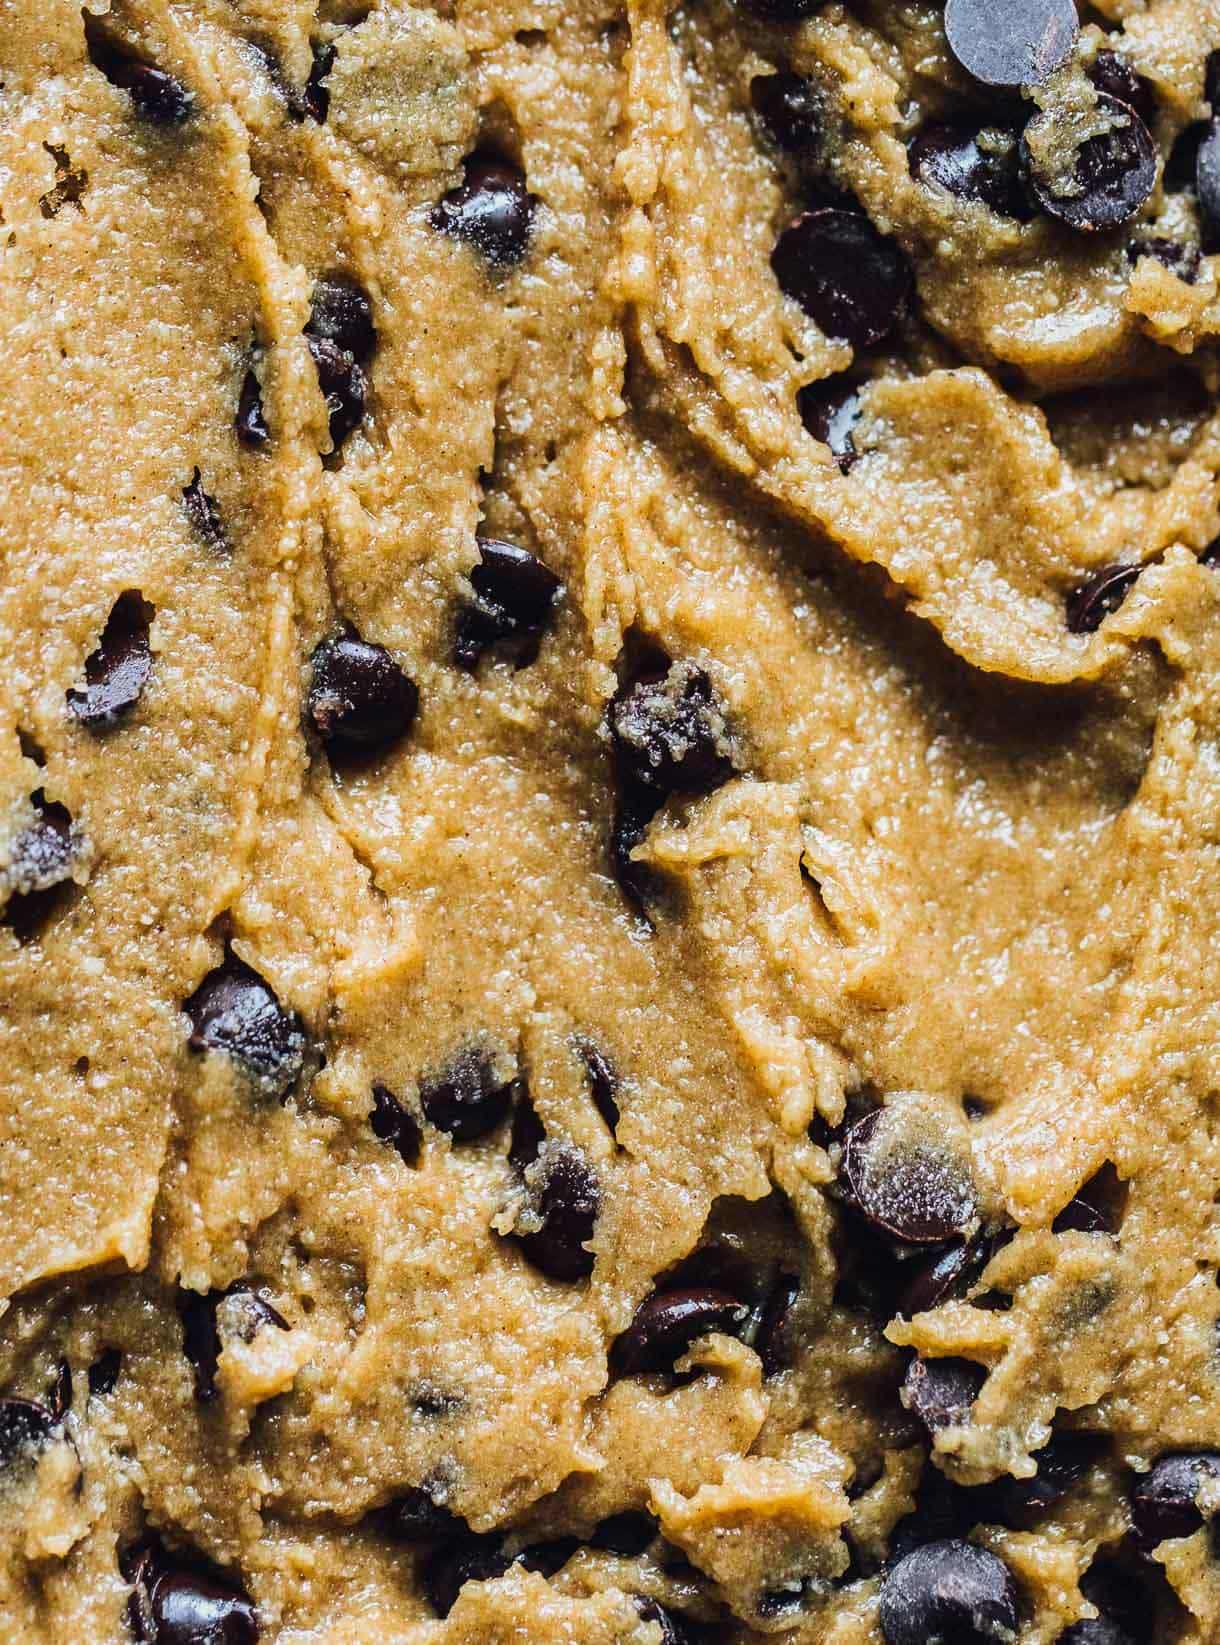 Tahini Chocolate Chip Cookie dough close-up